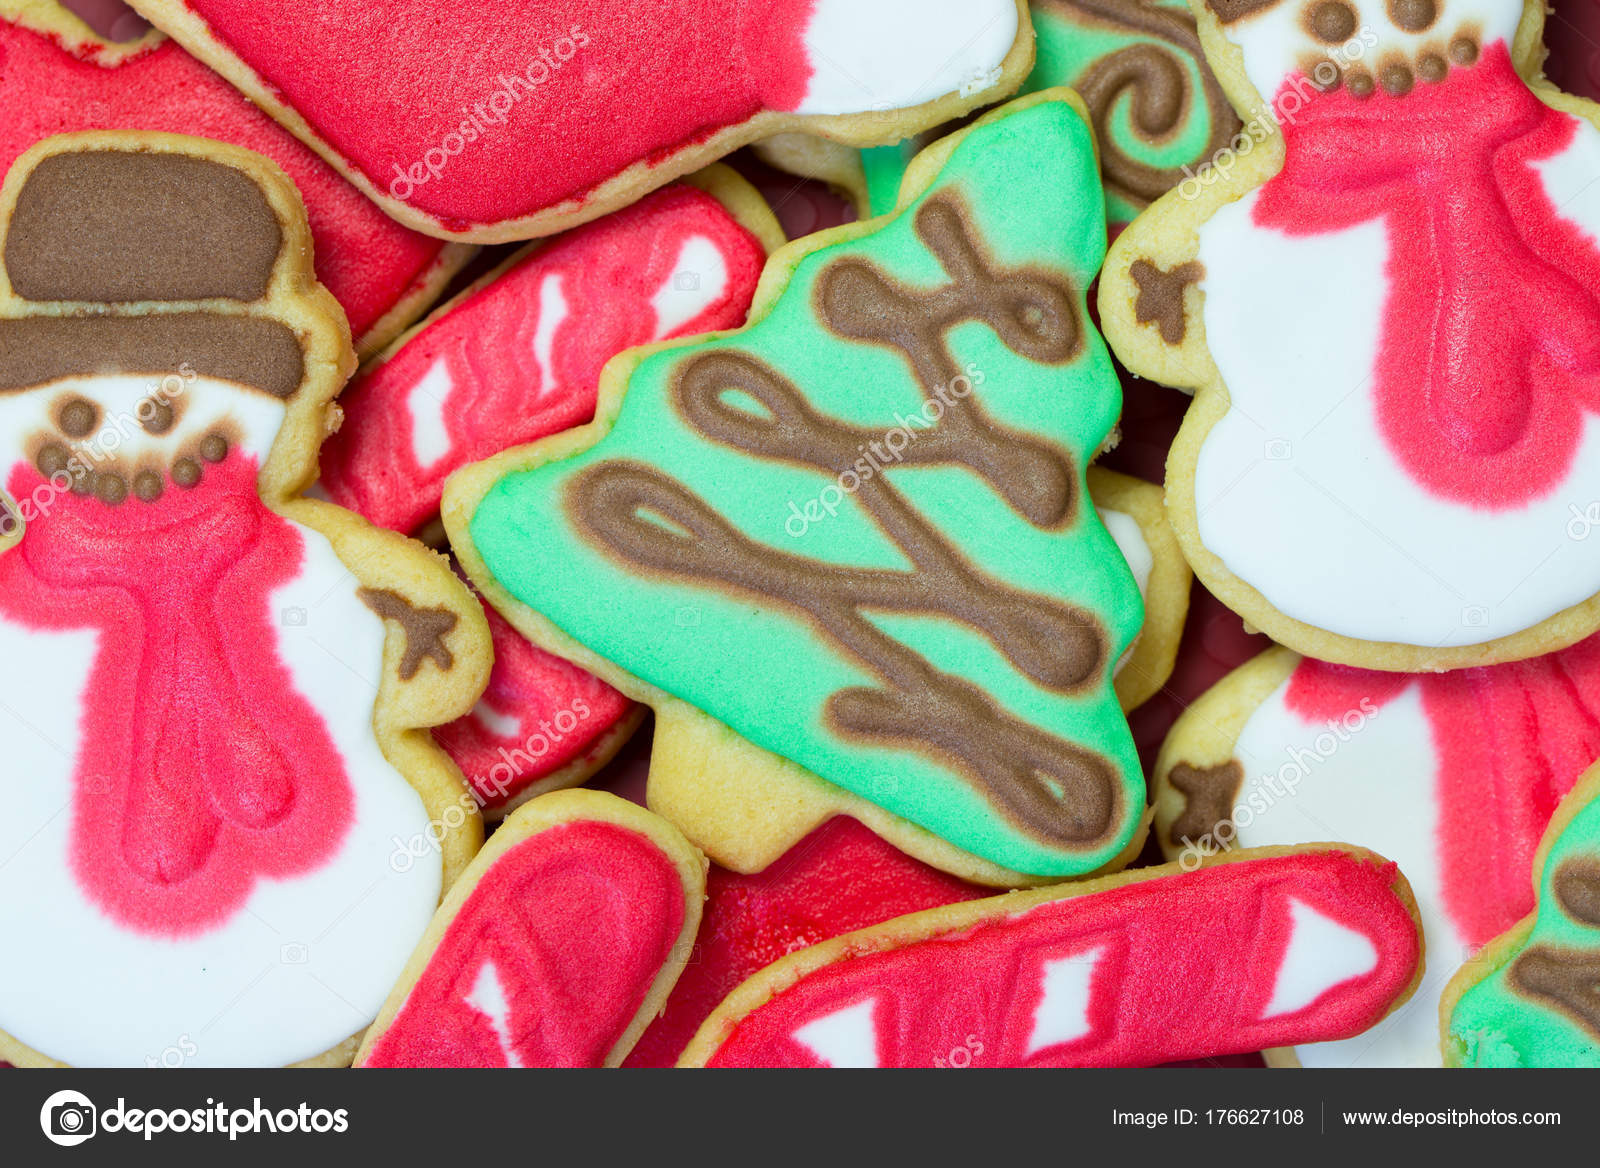 Royal Icing Christmas Cookies.Christmas Cookies Decorated With Royal Icing Stock Photo